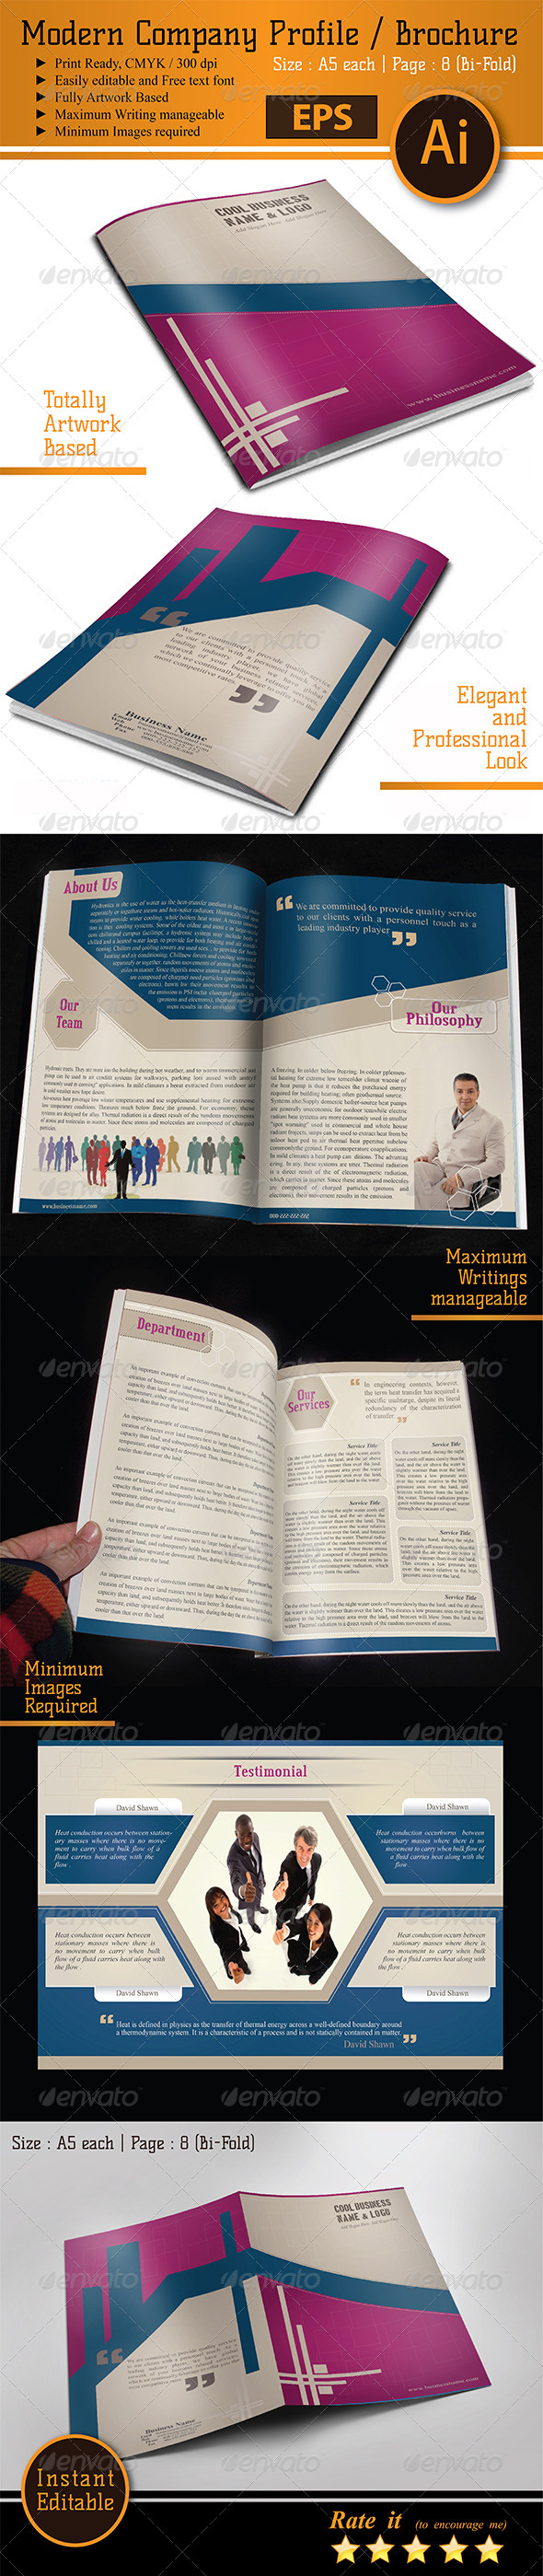 GraphicRiver Company Profile Corporate Brochure 6452394